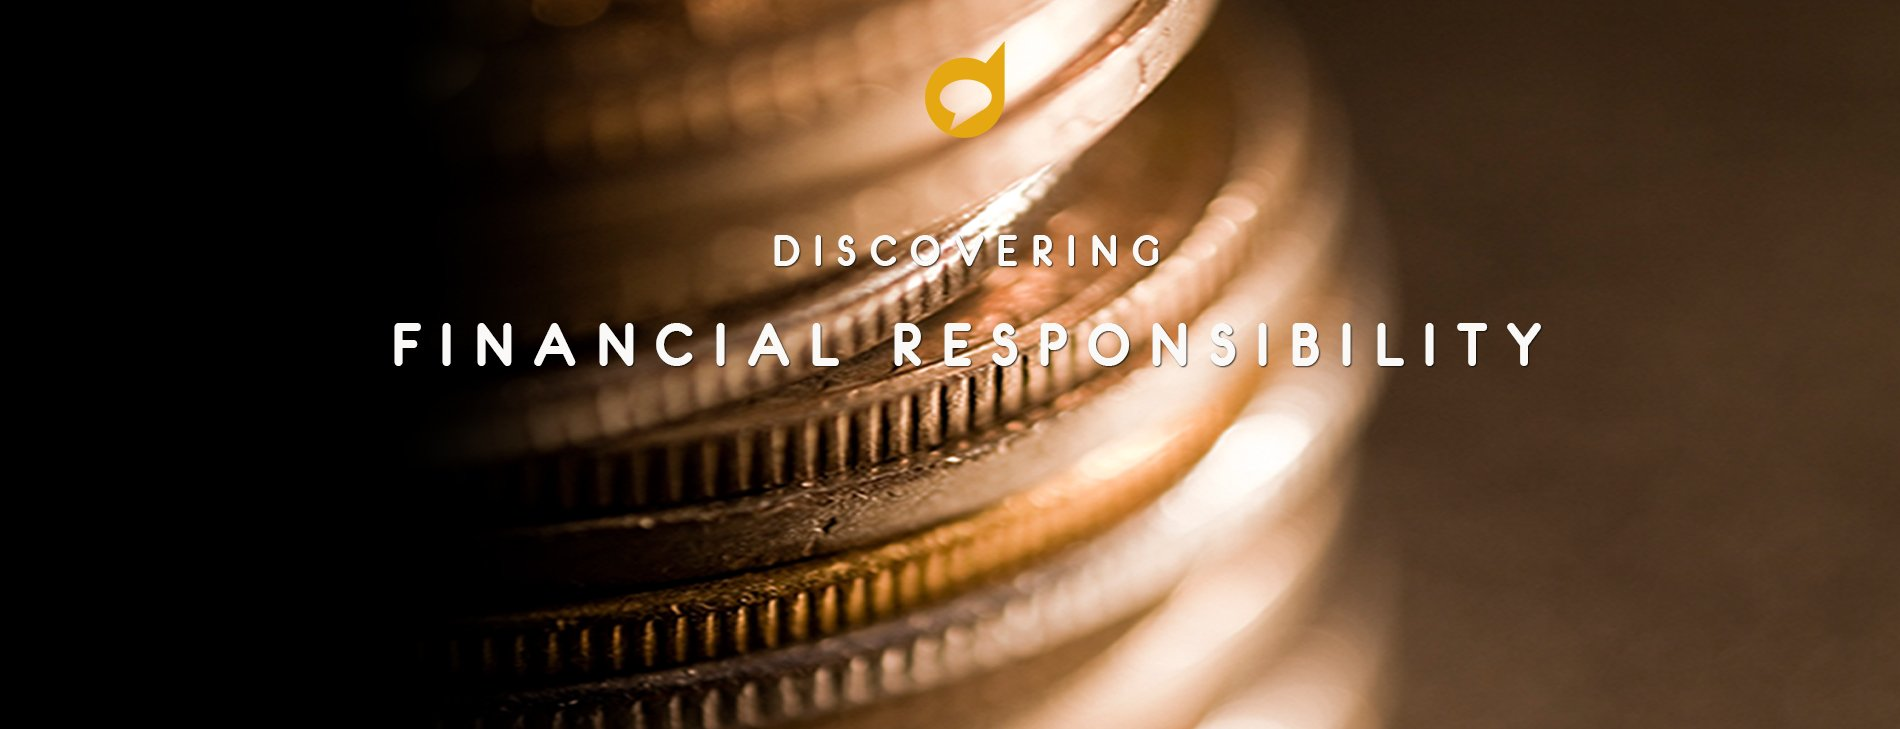 3 Tips For Learning Financial Responsibility